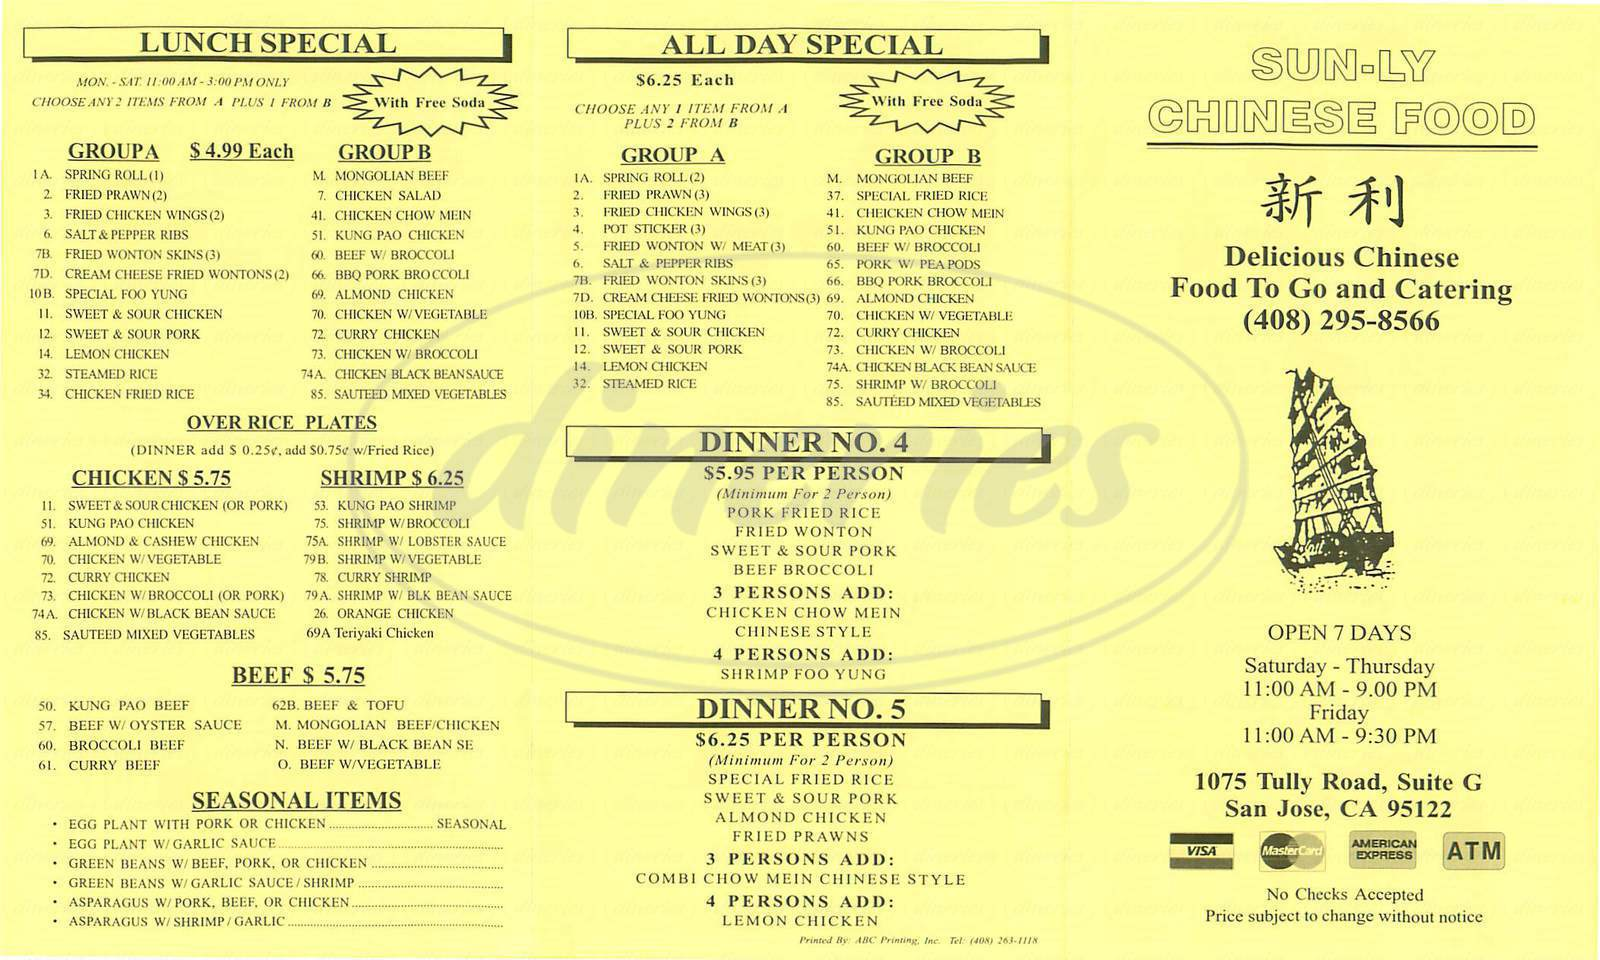 menu for Sun-Ly Chinese Food